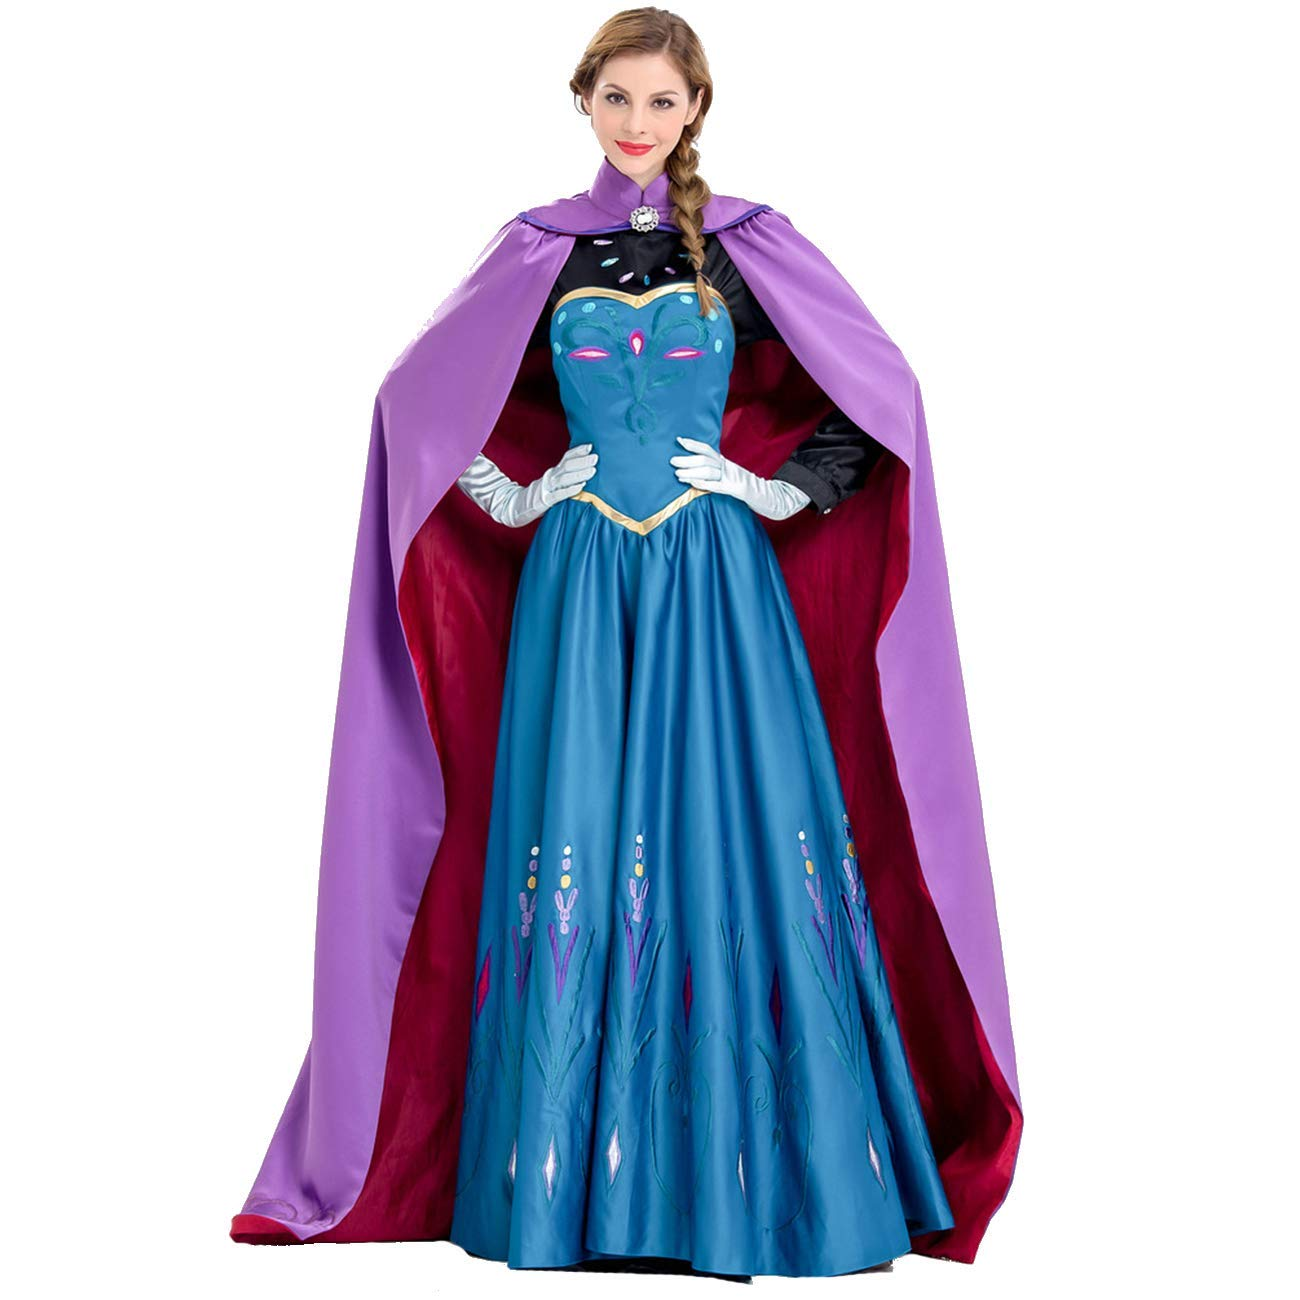 AQTOPS Women Halloween Princess Snow Queen Costumes Party Role Play Dress Up, Purple, X-Large